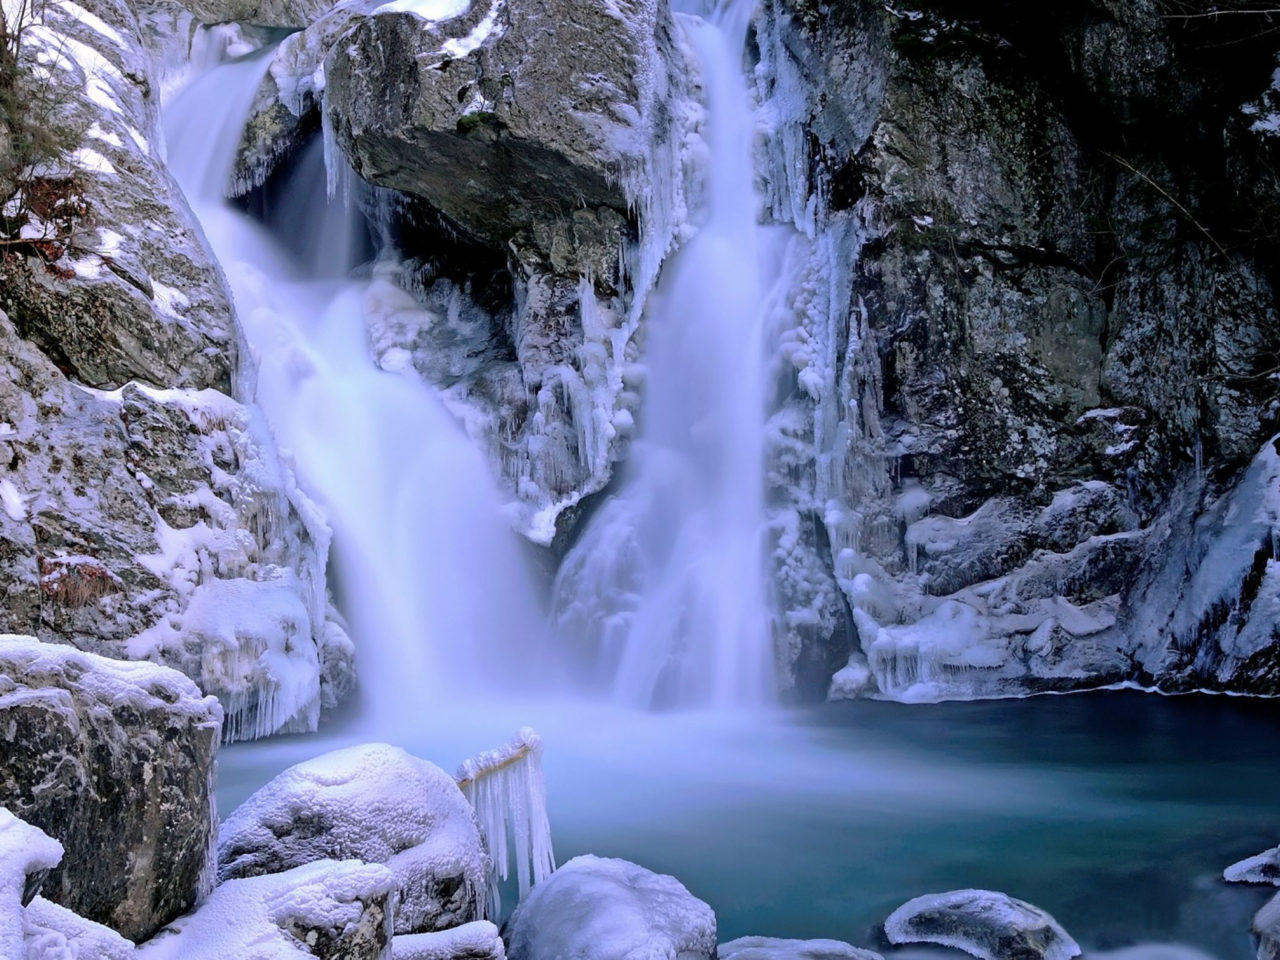 Water Fall Wallpaper Hd For Desktop Free Download Beautiful Waterfall Winter Snow Ice Rock Picture With